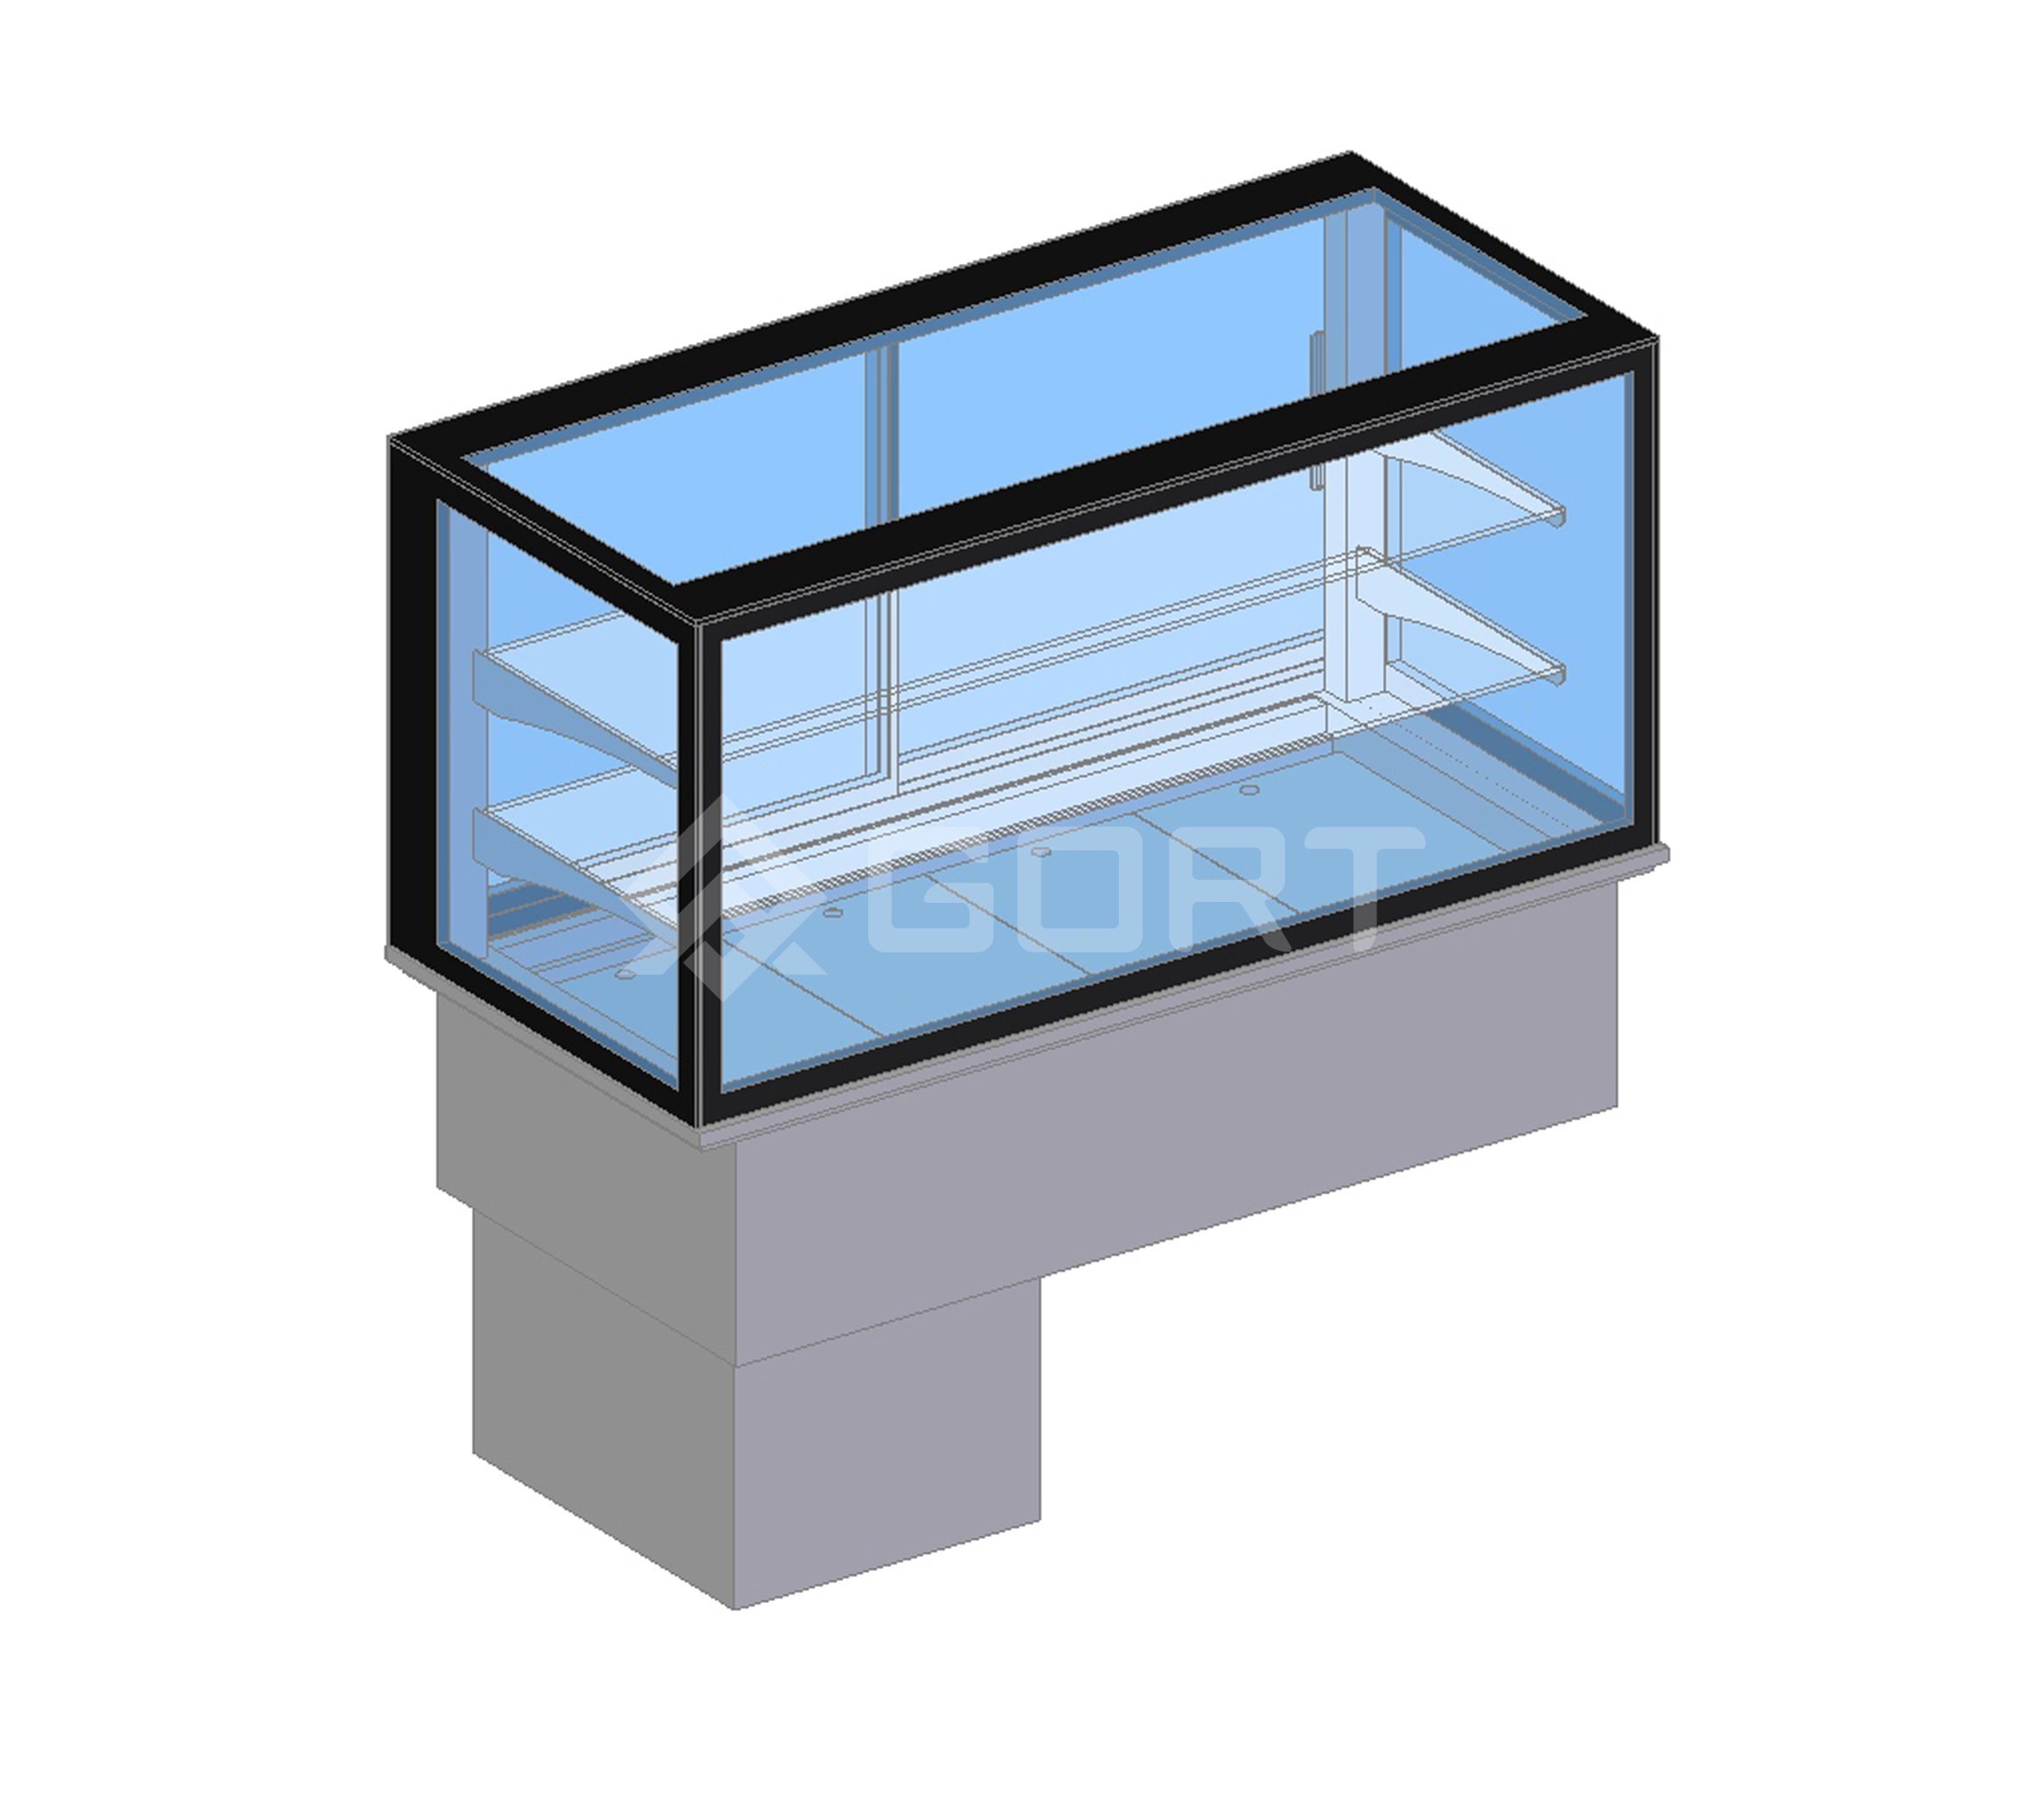 Island refrigerated display DROP-IN, 4 x GN1/1, closed